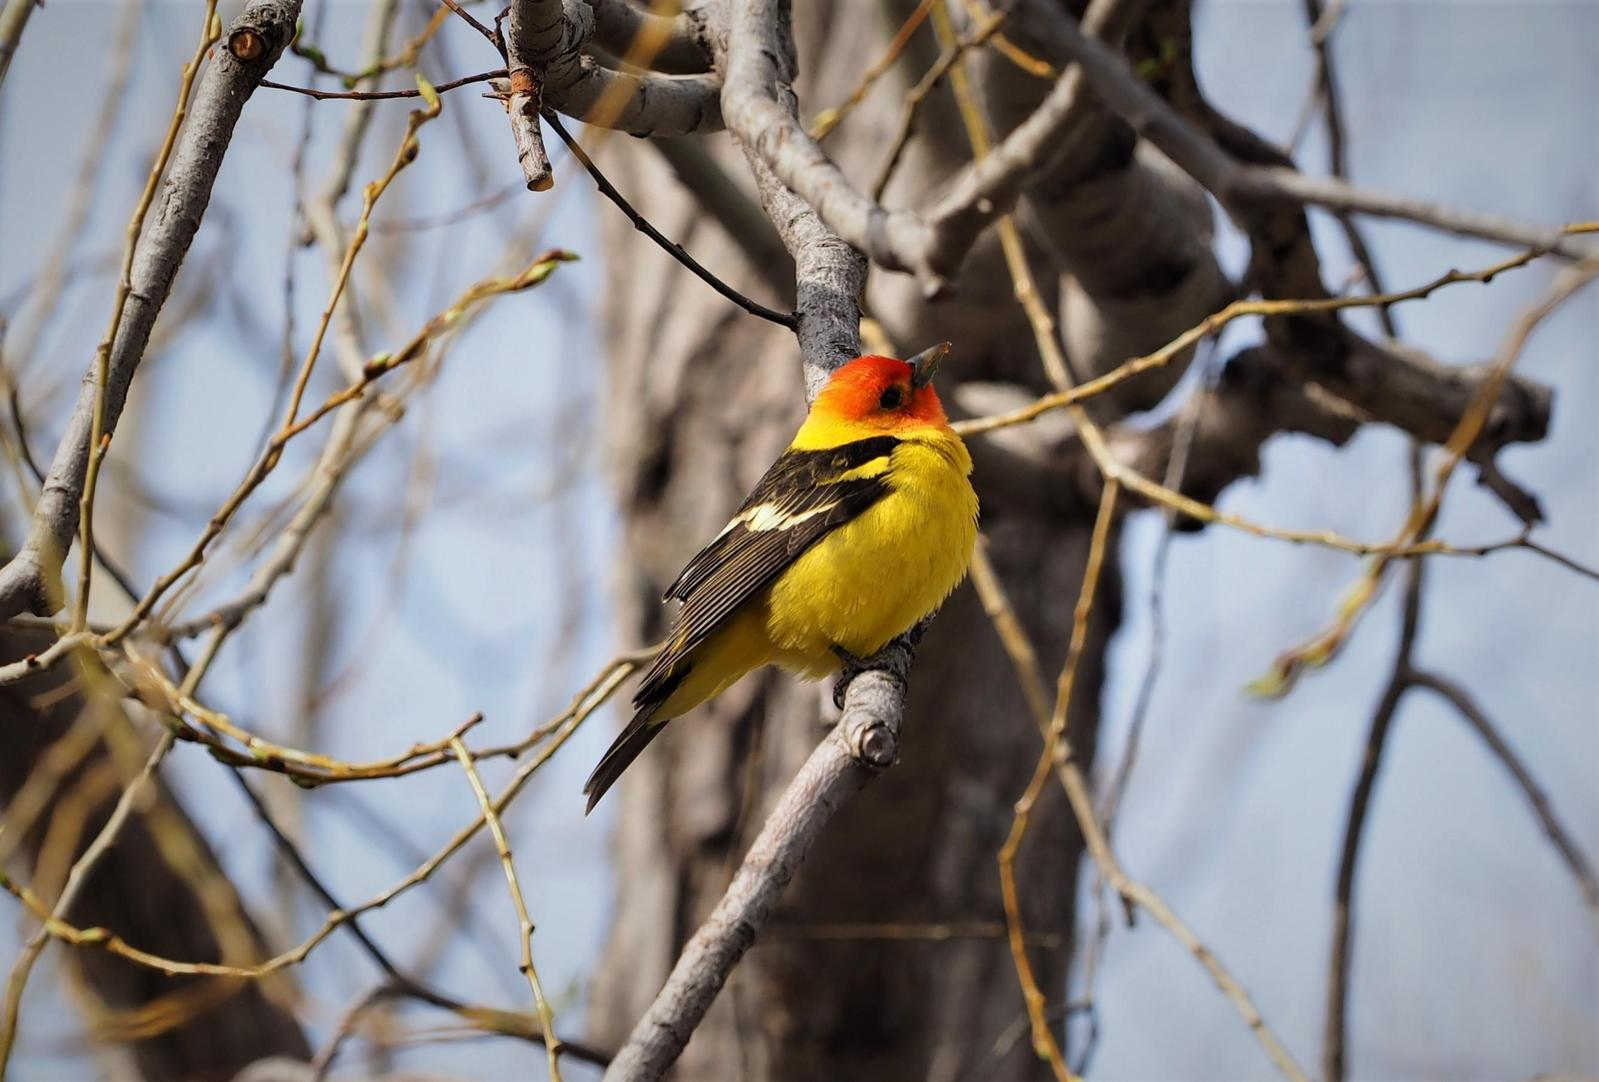 Western Tanager Photo by Colin Hill